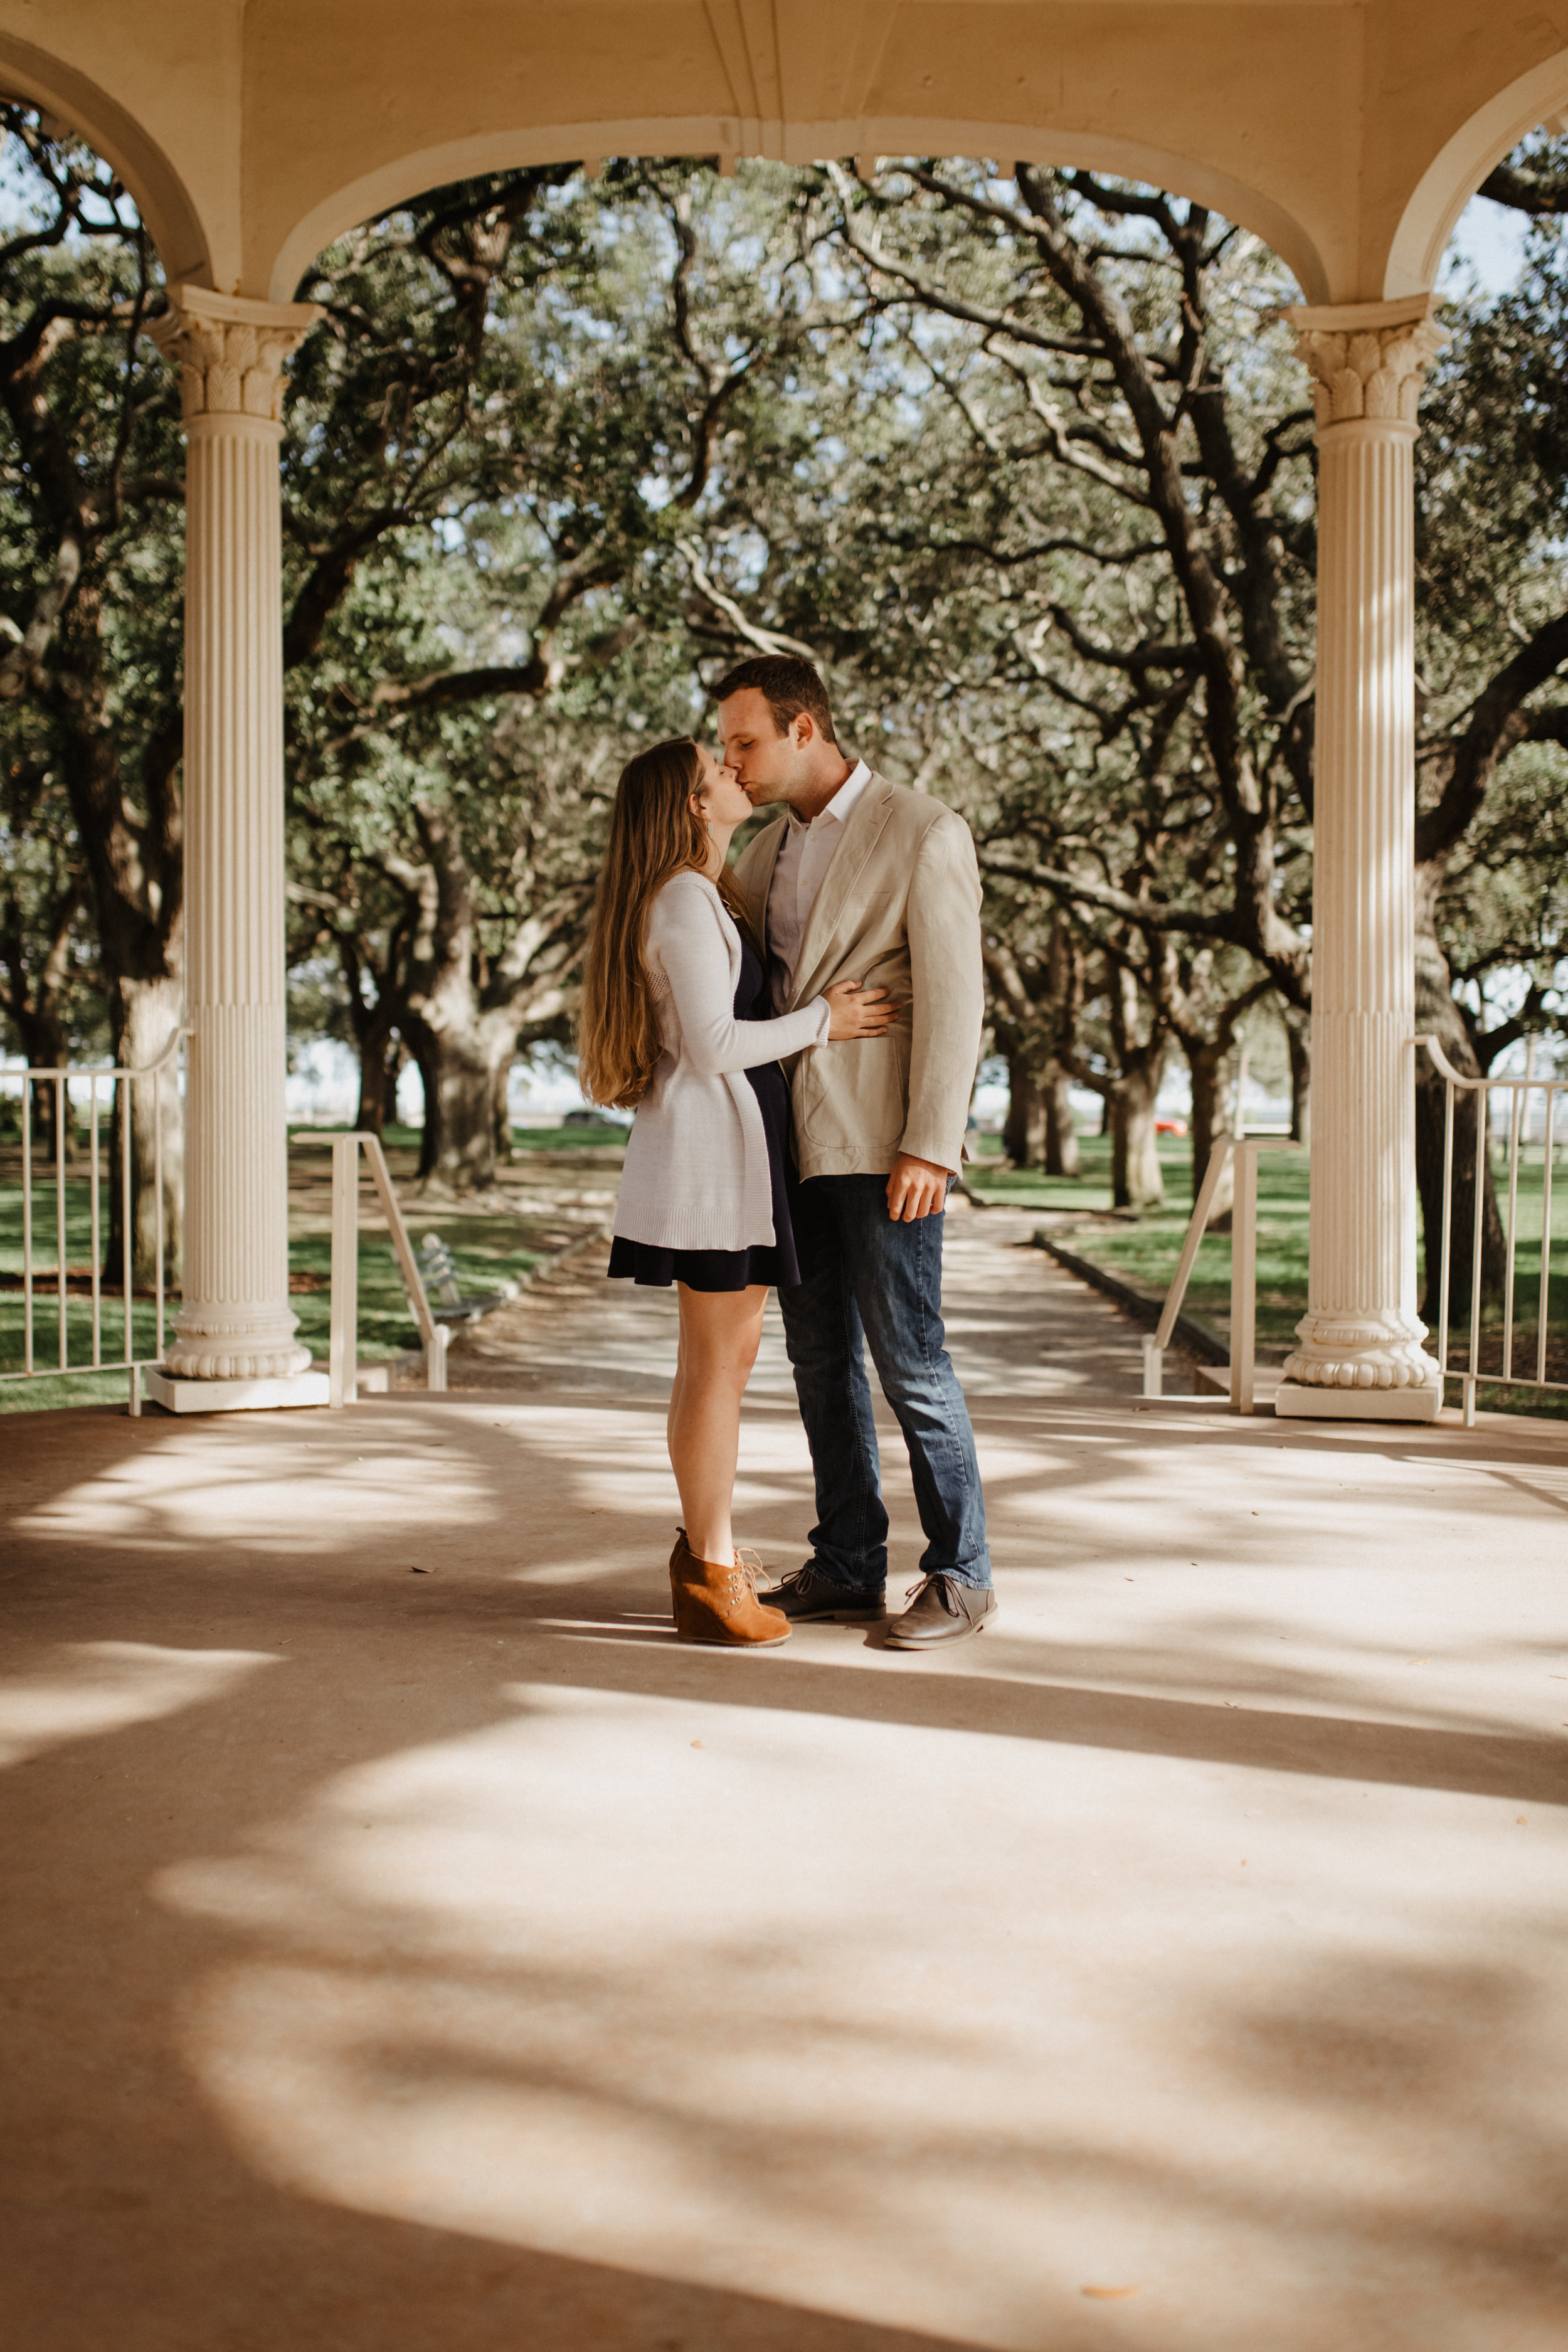 ShadowShinePictures-RachelDavid-Eudy-Engagement-Photography-31.jpg